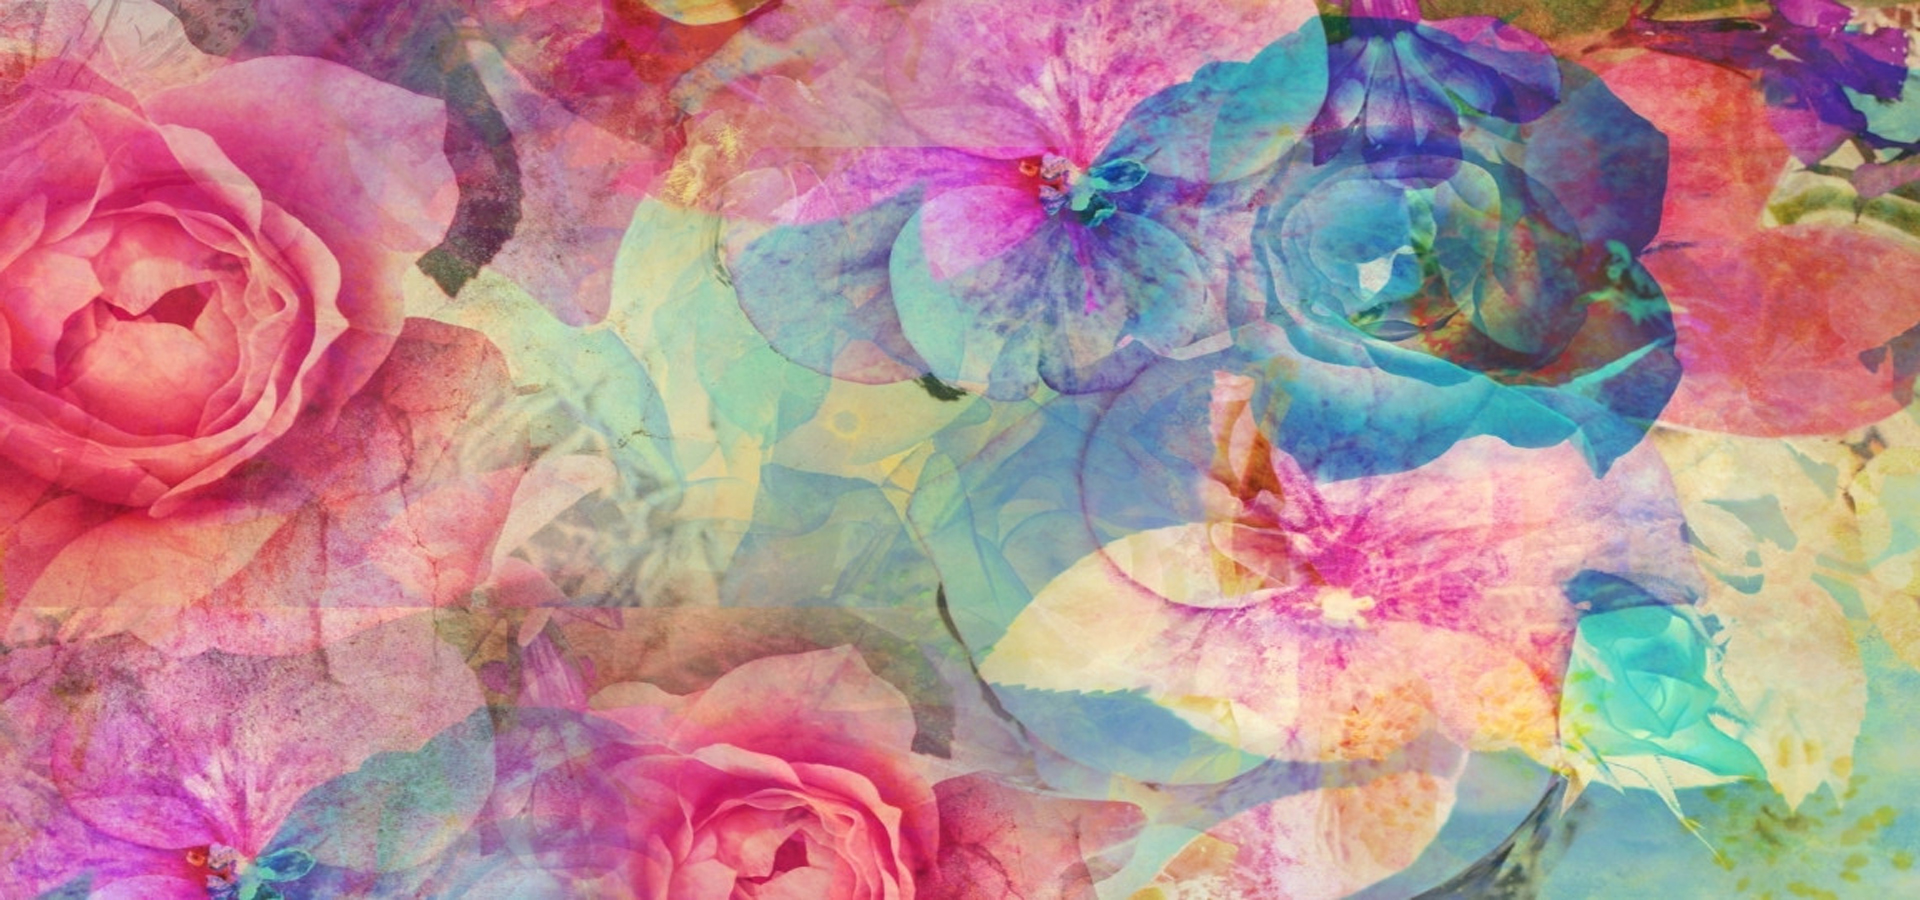 taobao abstract flower background poster banner background  poster  ink  banner background image